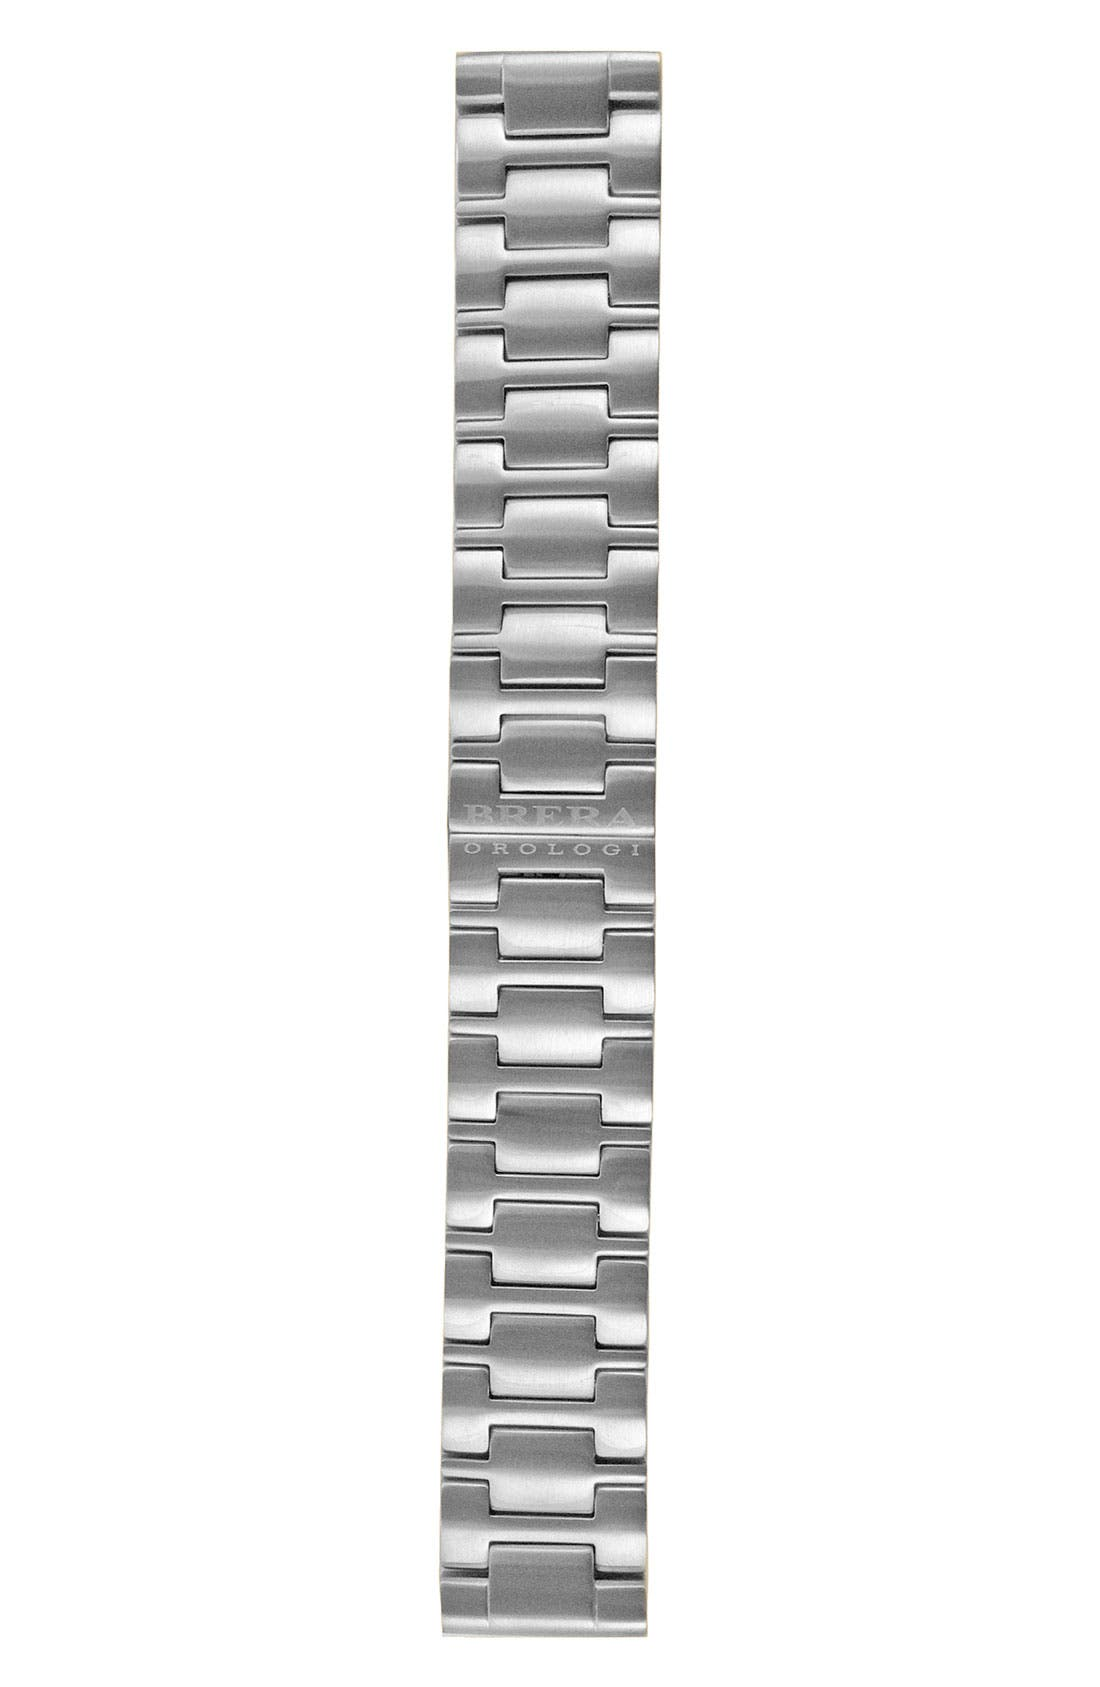 Alternate Image 1 Selected - Brera 'Francesca - Eterno Piccolo' 22mm Stainless Steel Watch Bracelet